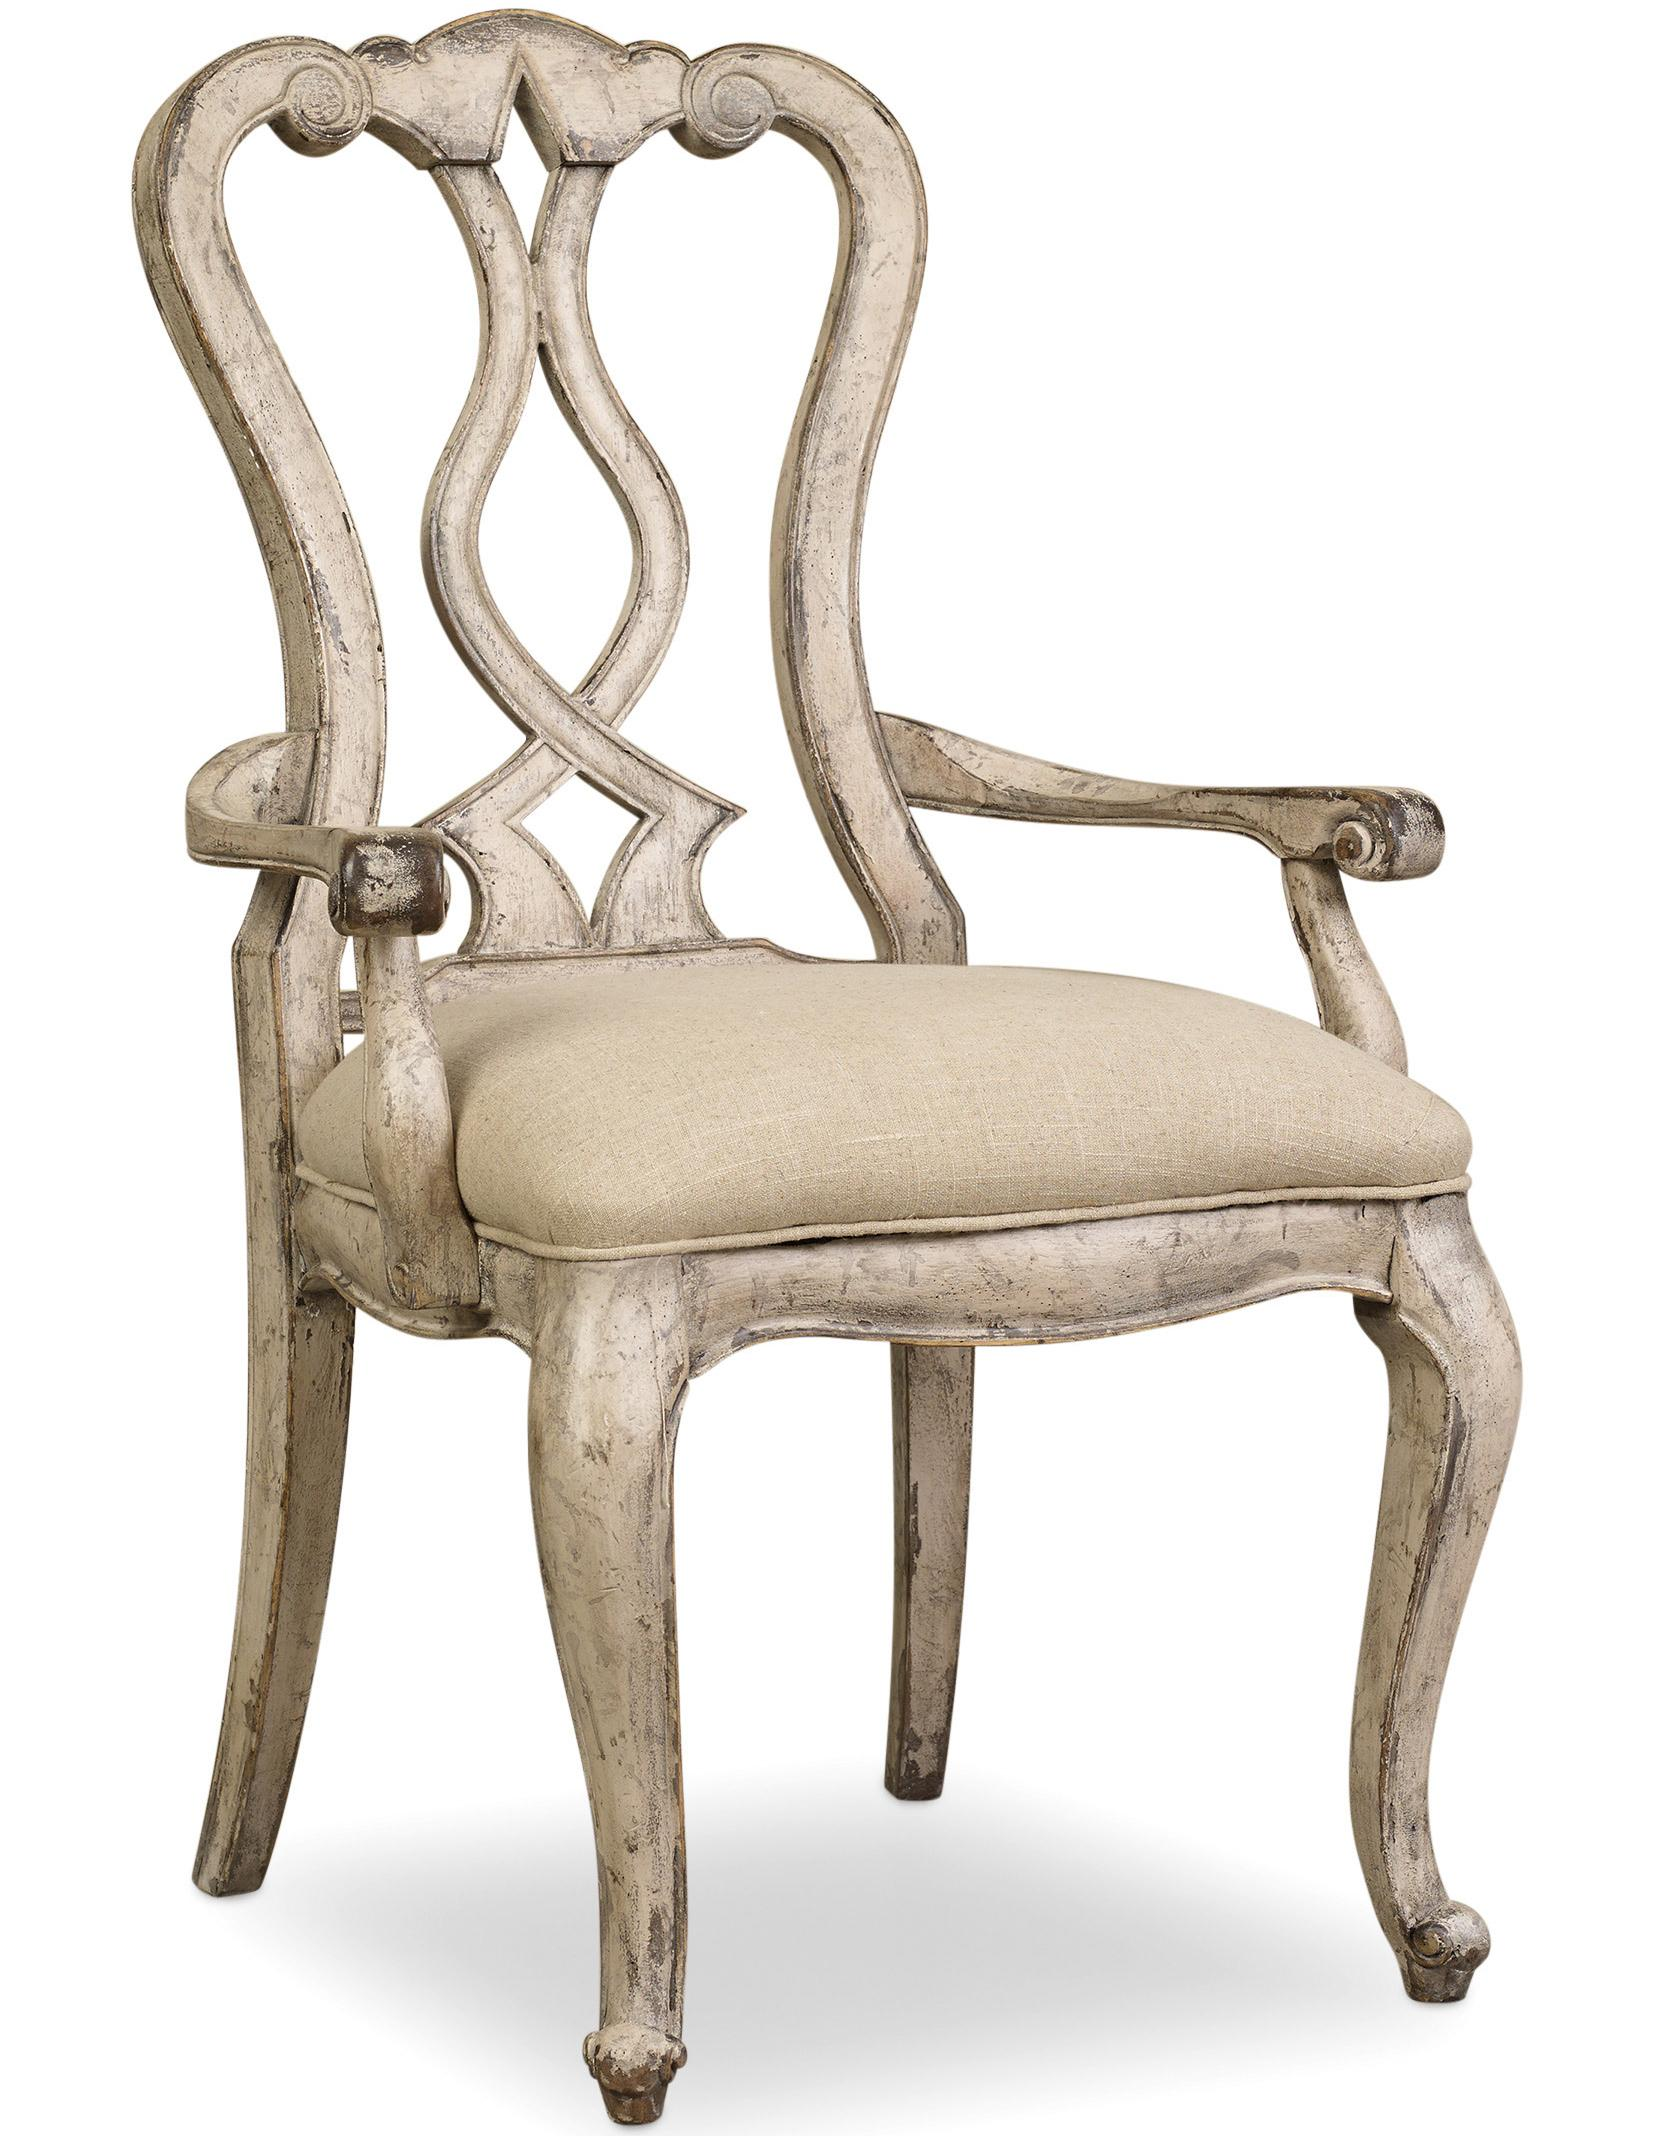 Hamilton Home Chatelet Splatback Arm Chair - Item Number: 5350-75400